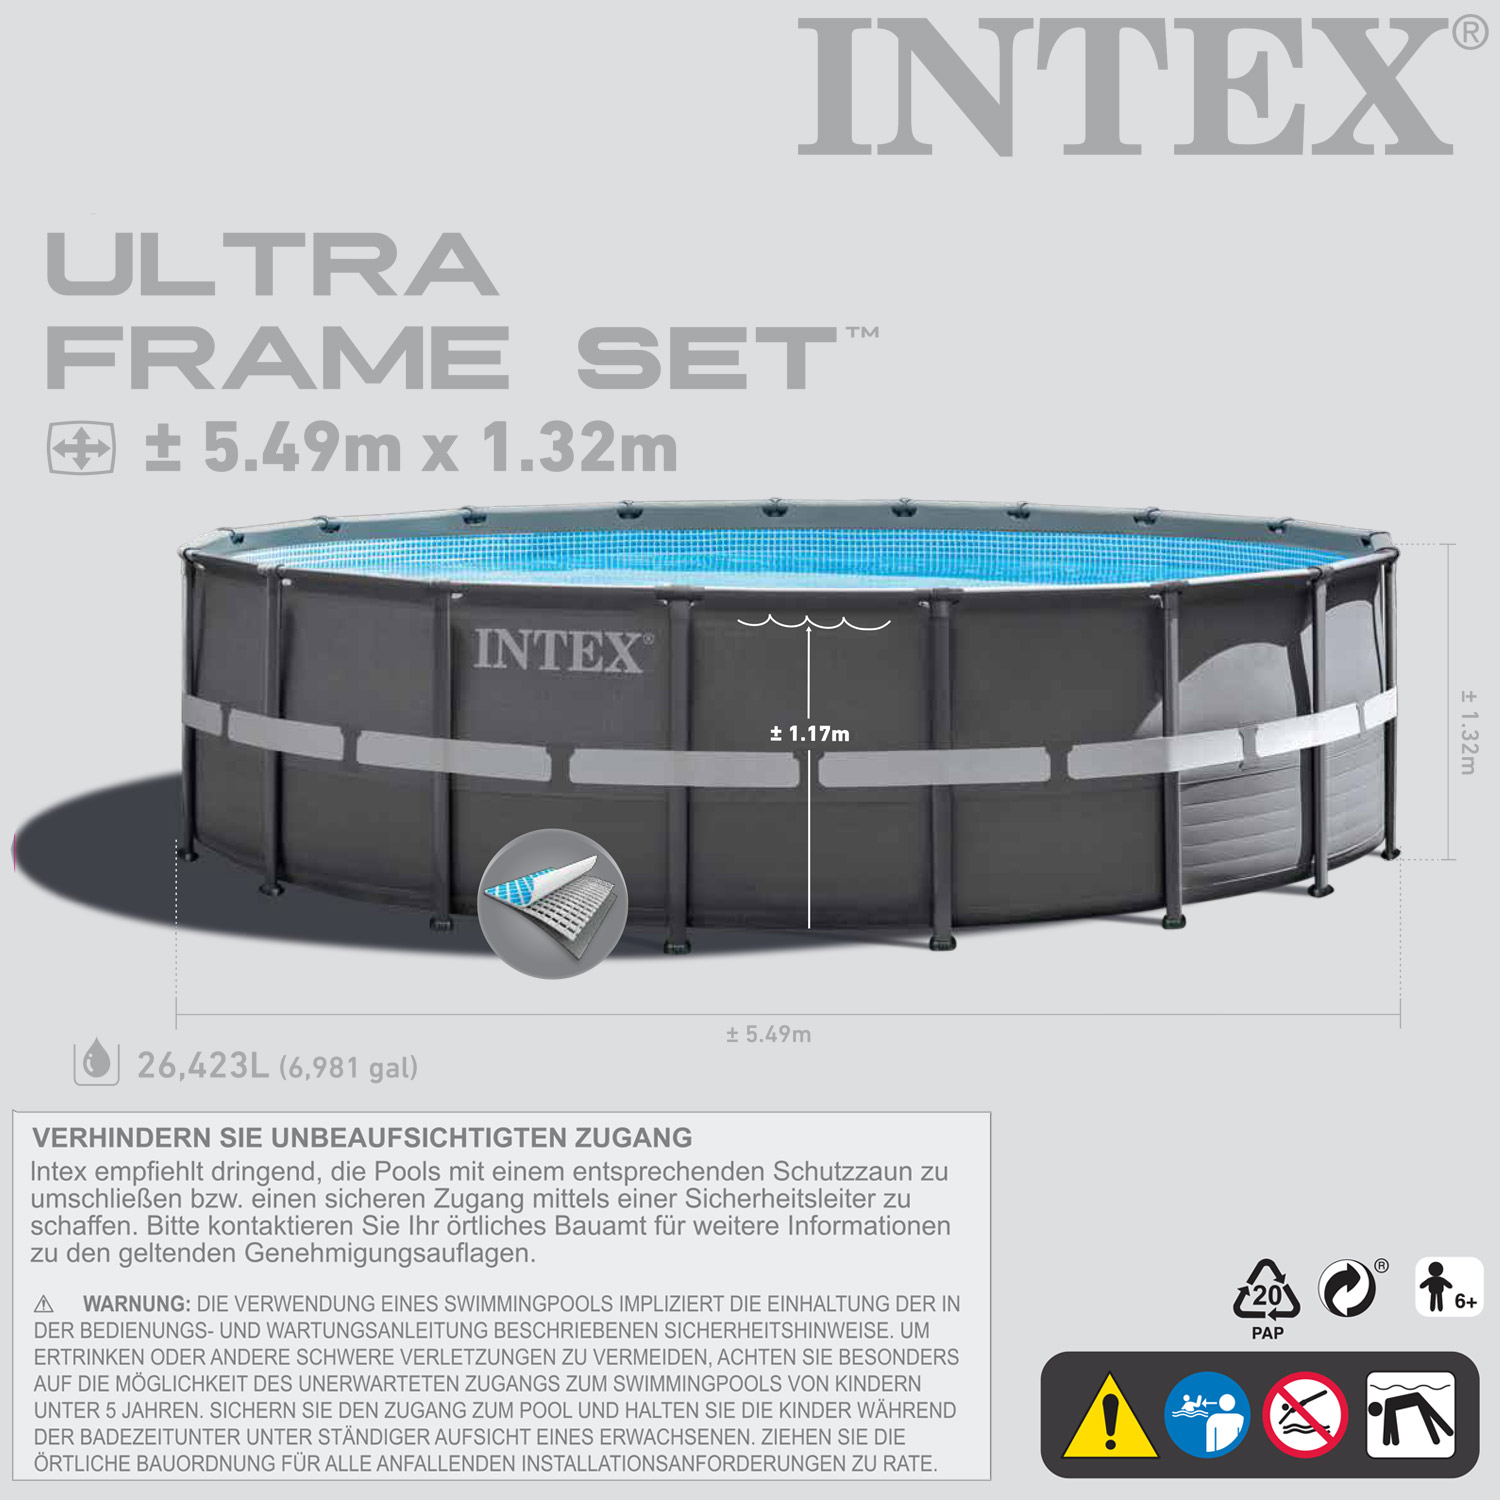 intex 28909 ersatzpool 549x132 cm swimming pool frame ohne zubeh r. Black Bedroom Furniture Sets. Home Design Ideas